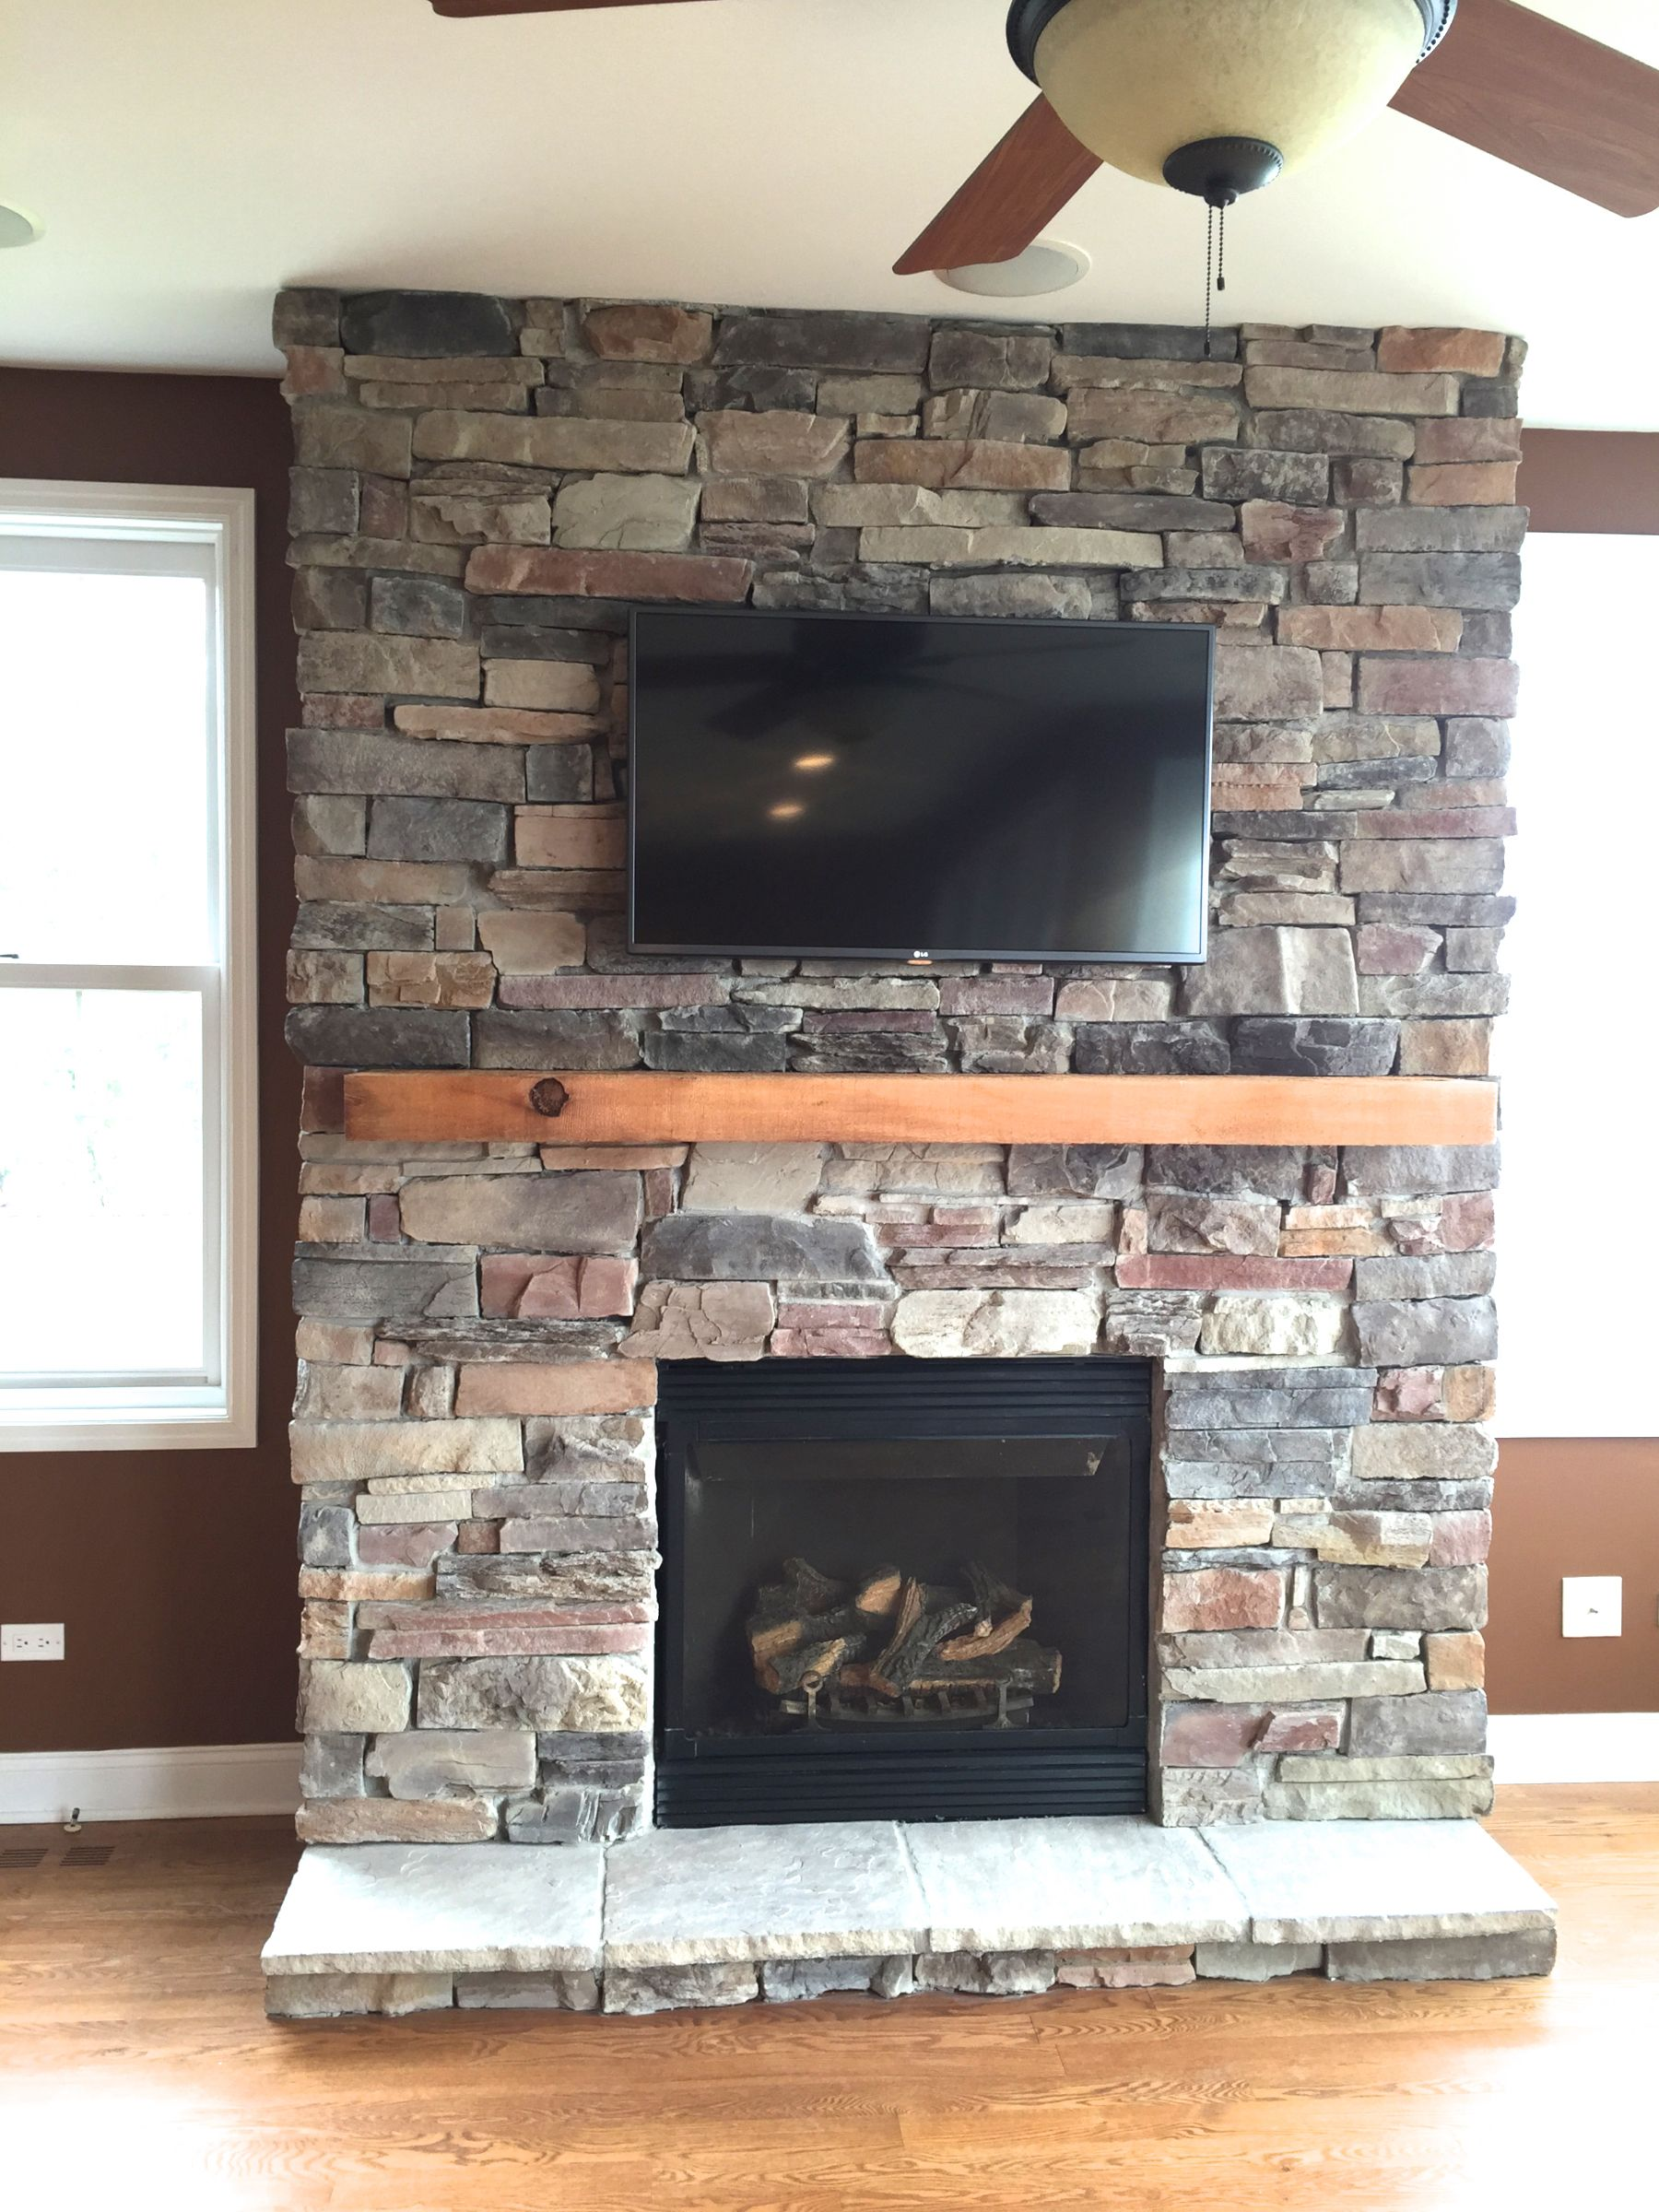 Level Up Your Fireplace With Our Most Textured Mountain Ledge Stone Veneer.  Visit Us!